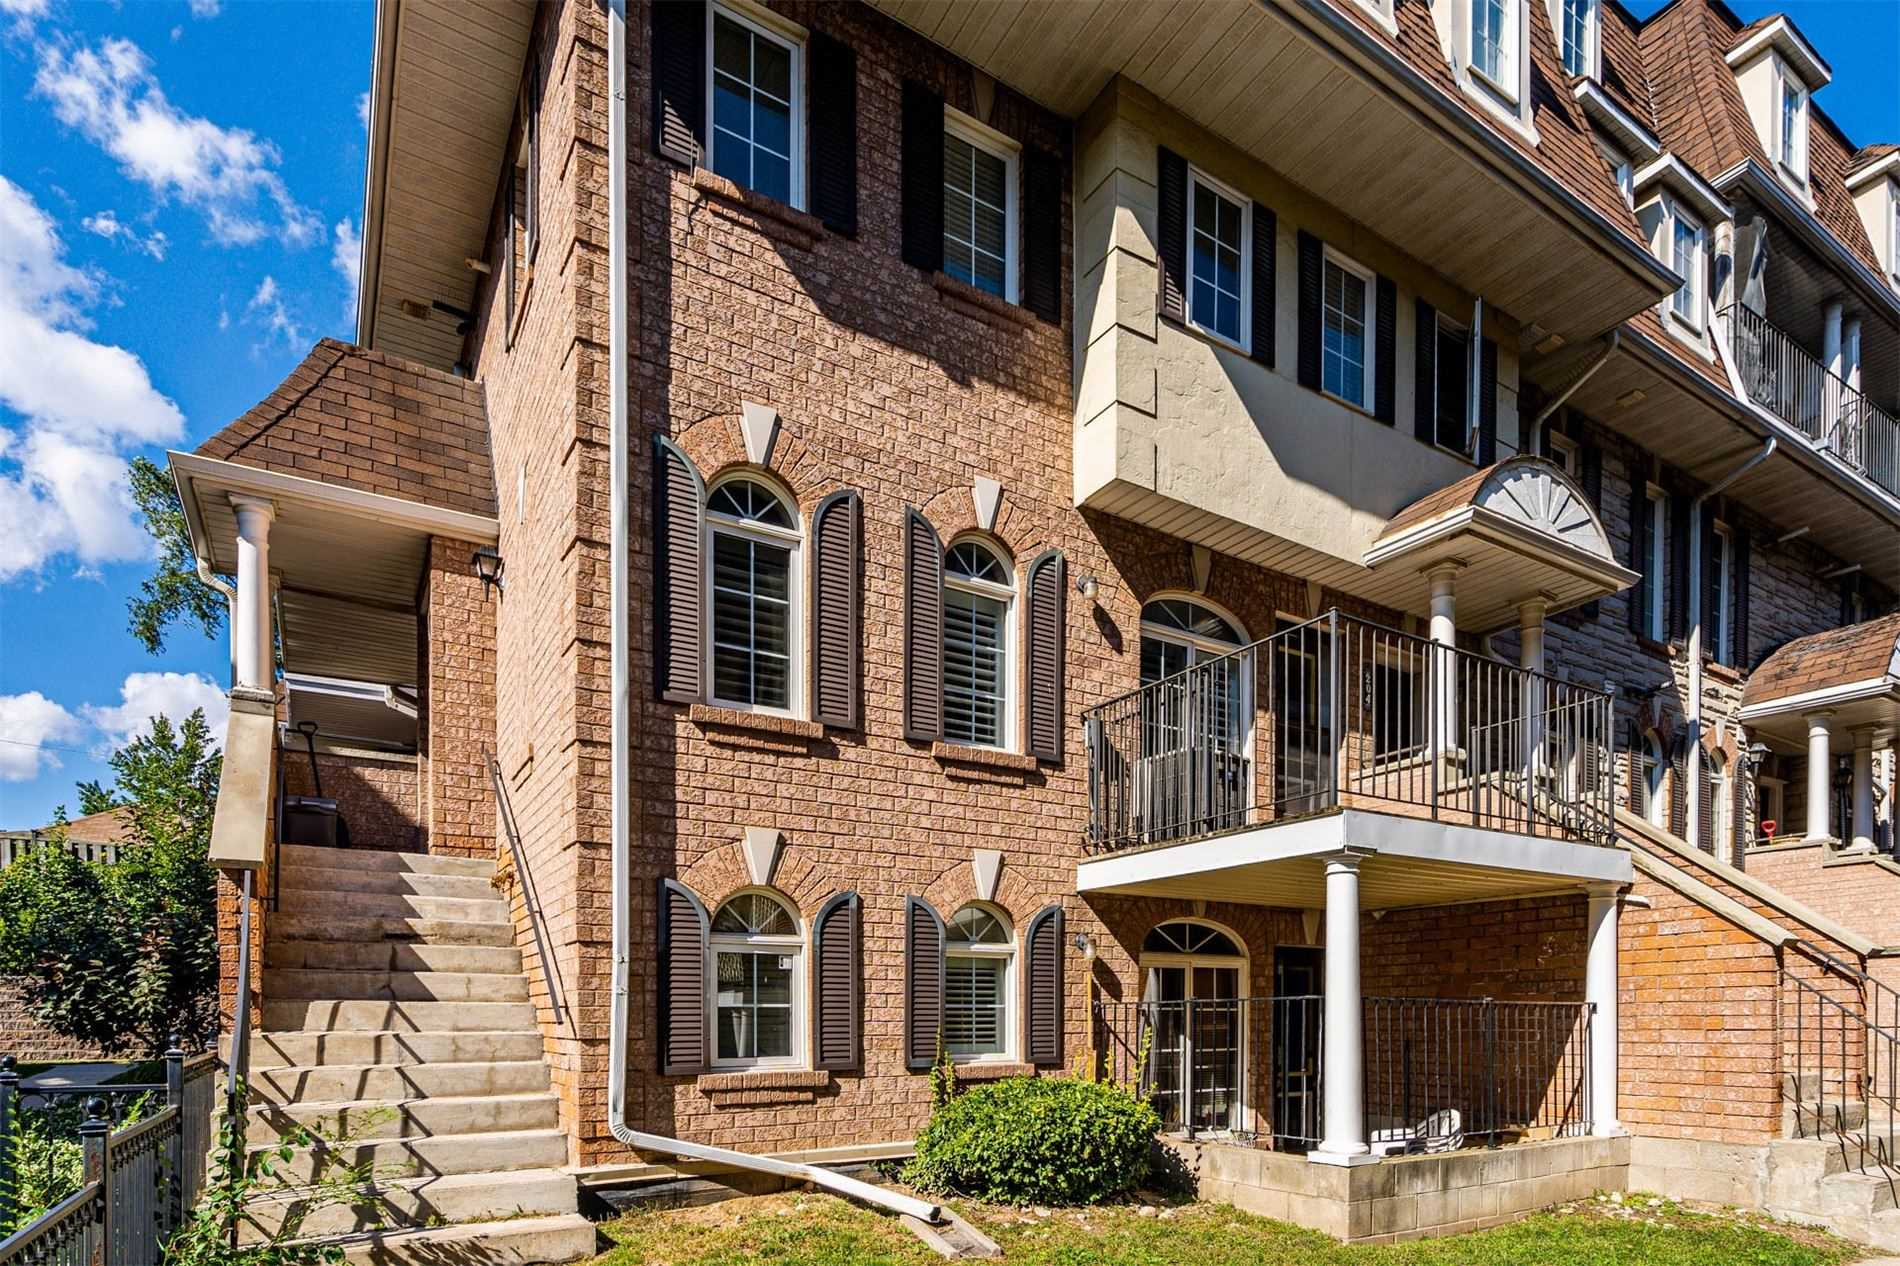 Condo Townhouse For Sale In Toronto , 3 Bedrooms Bedrooms, ,2 BathroomsBathrooms,Condo Townhouse,For Sale,204,Sidney Belsey